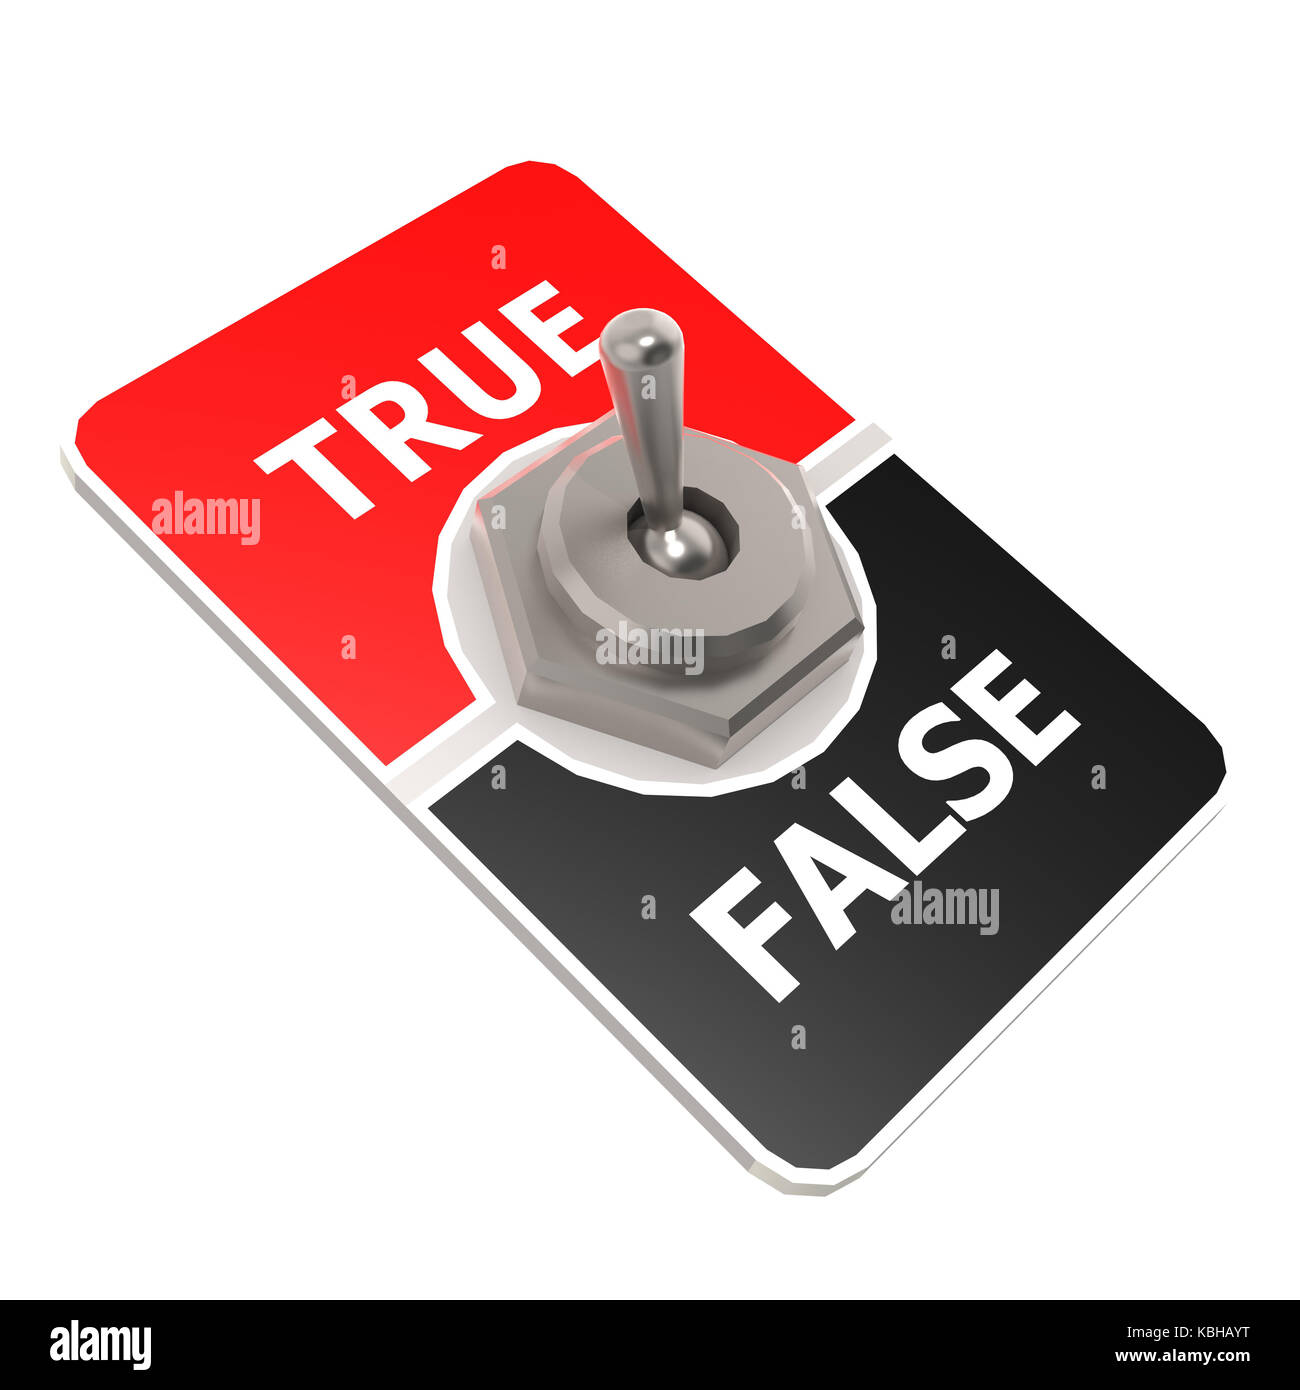 True toggle switch image with hi-res rendered artwork that could be used for any graphic design. - Stock Image